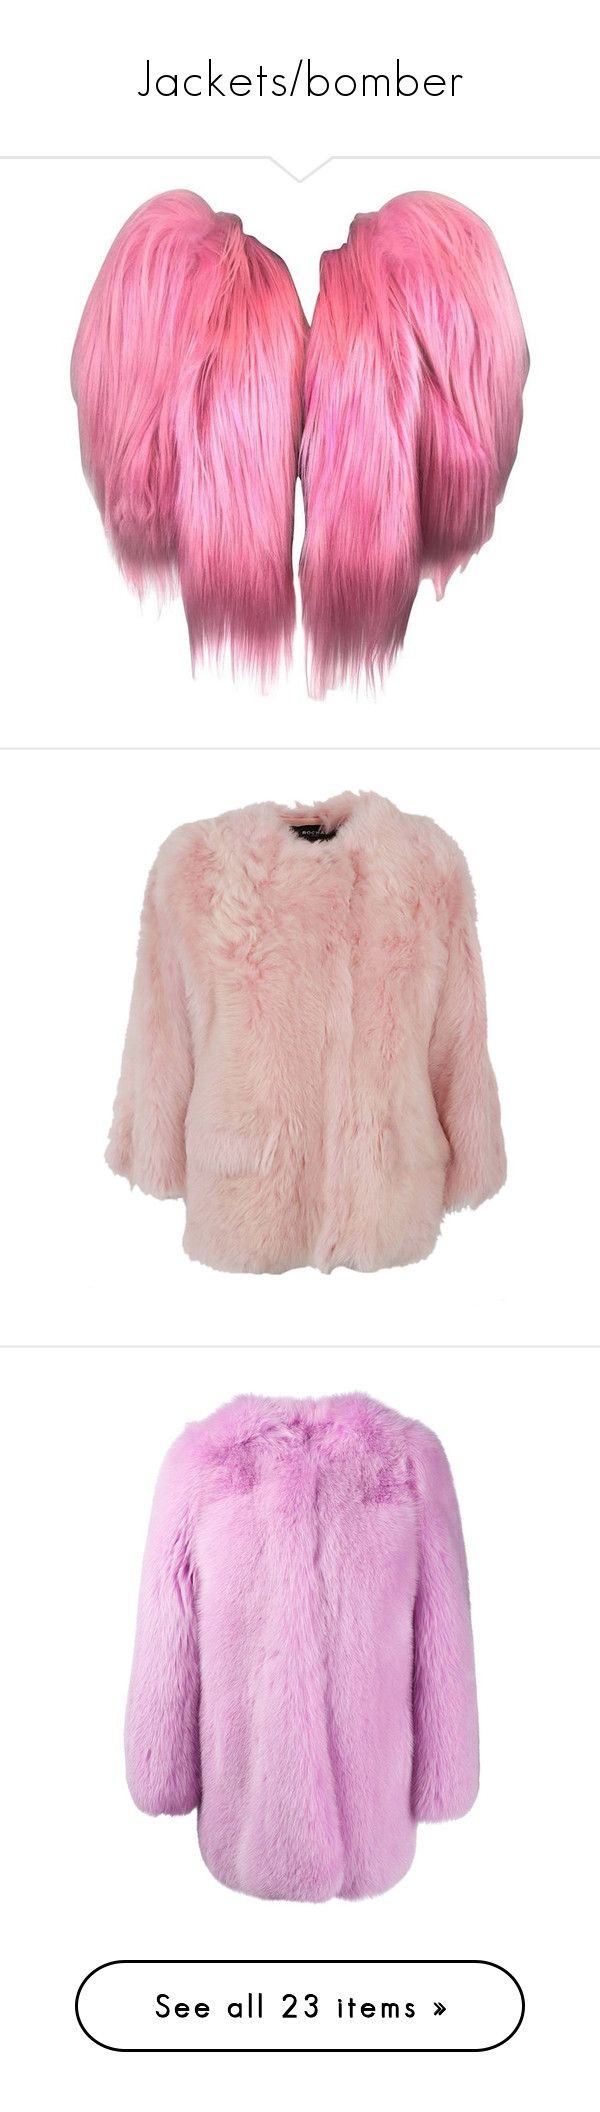 """""""Jackets/bomber"""" by wiffeyhaila ❤ liked on Polyvore featuring outerwear, jackets, coats, pink, cropped fur jacket, dolce gabbana jacket, pink fur jacket, pink jacket, fur jacket and straight jacket"""